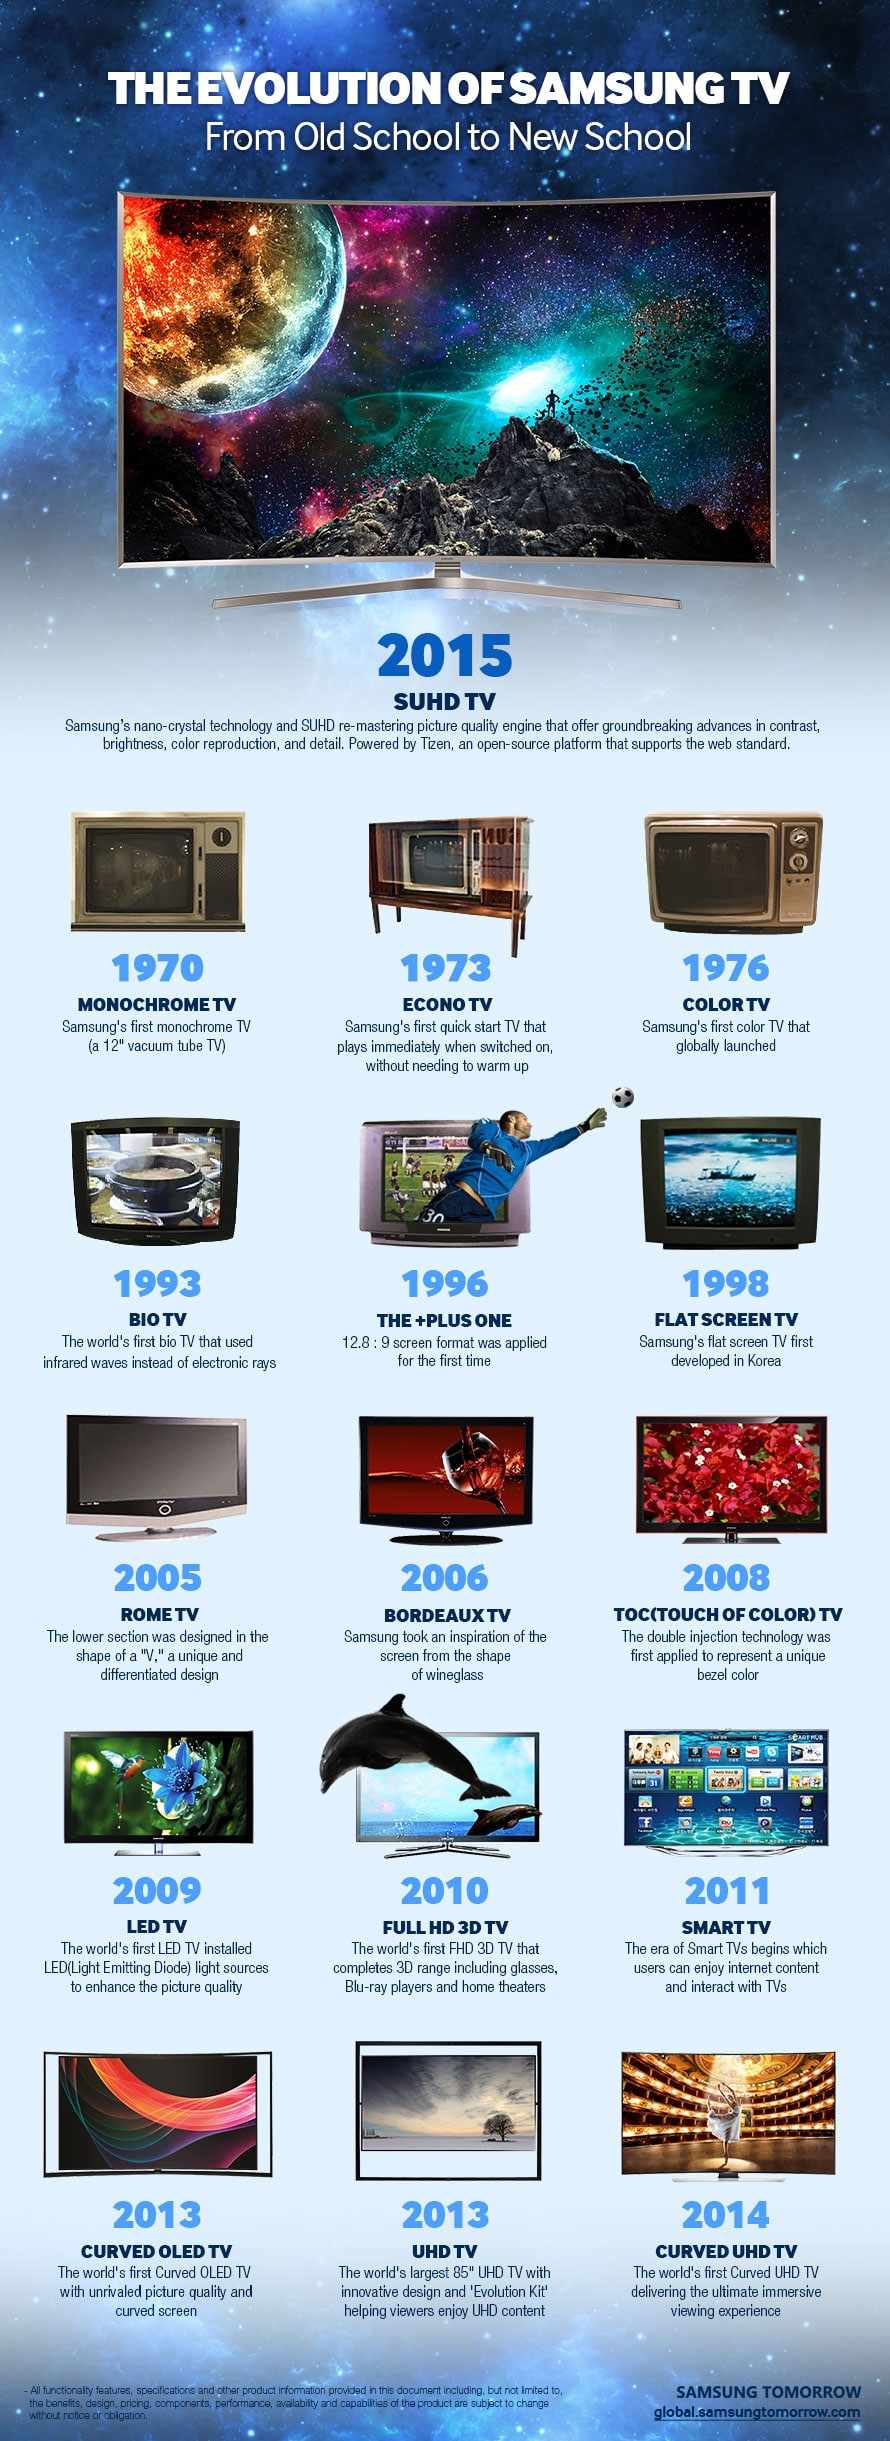 The Evolution of Samsung TV von 1970 bis 2015